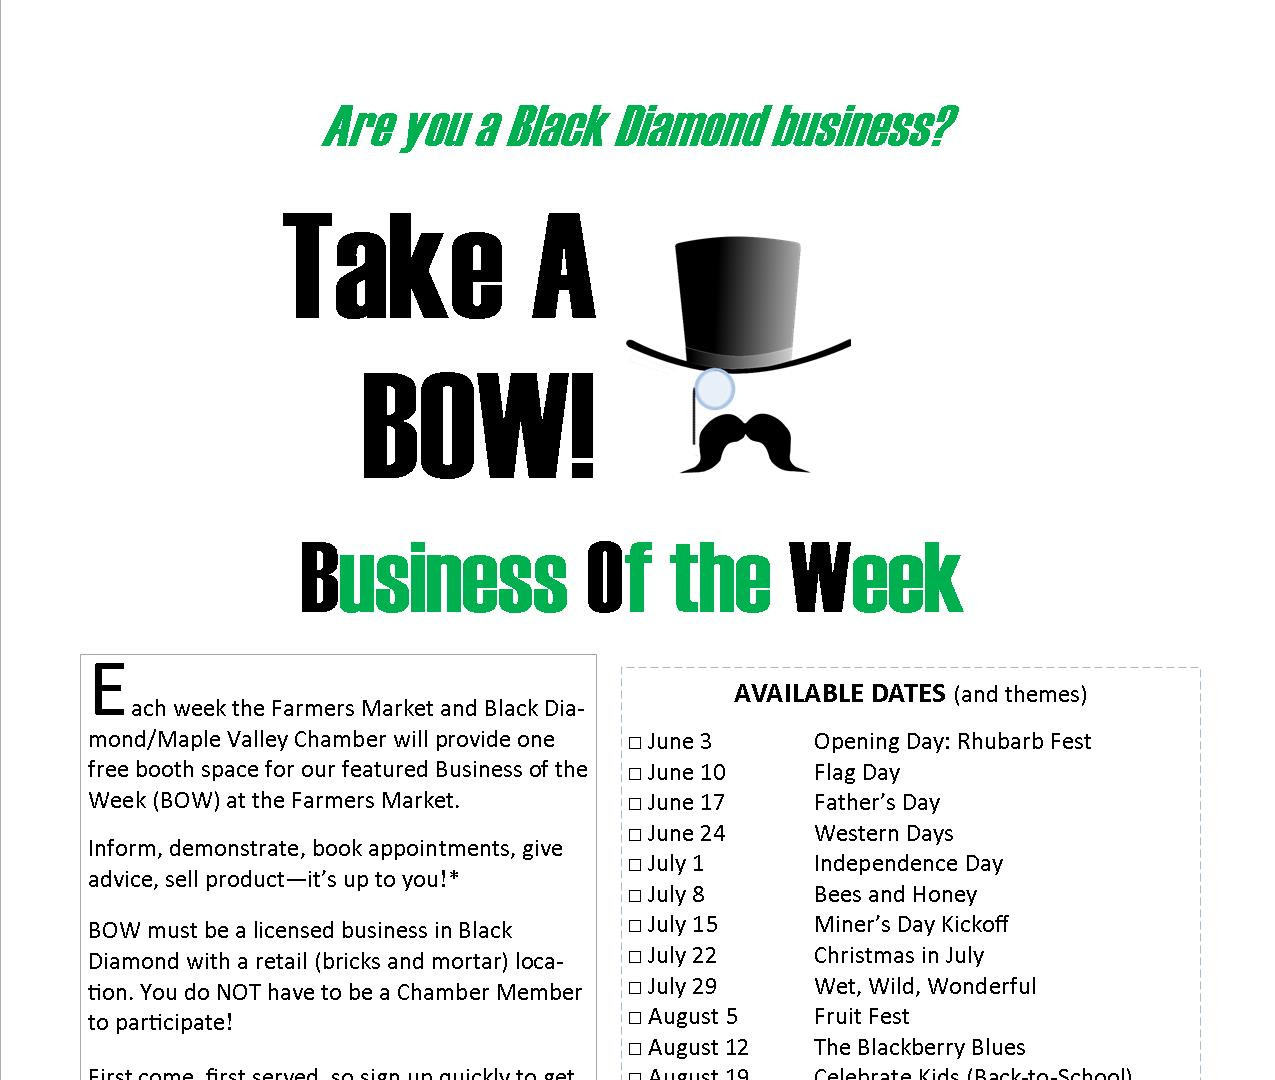 Business of the Week at the Farmers Maret